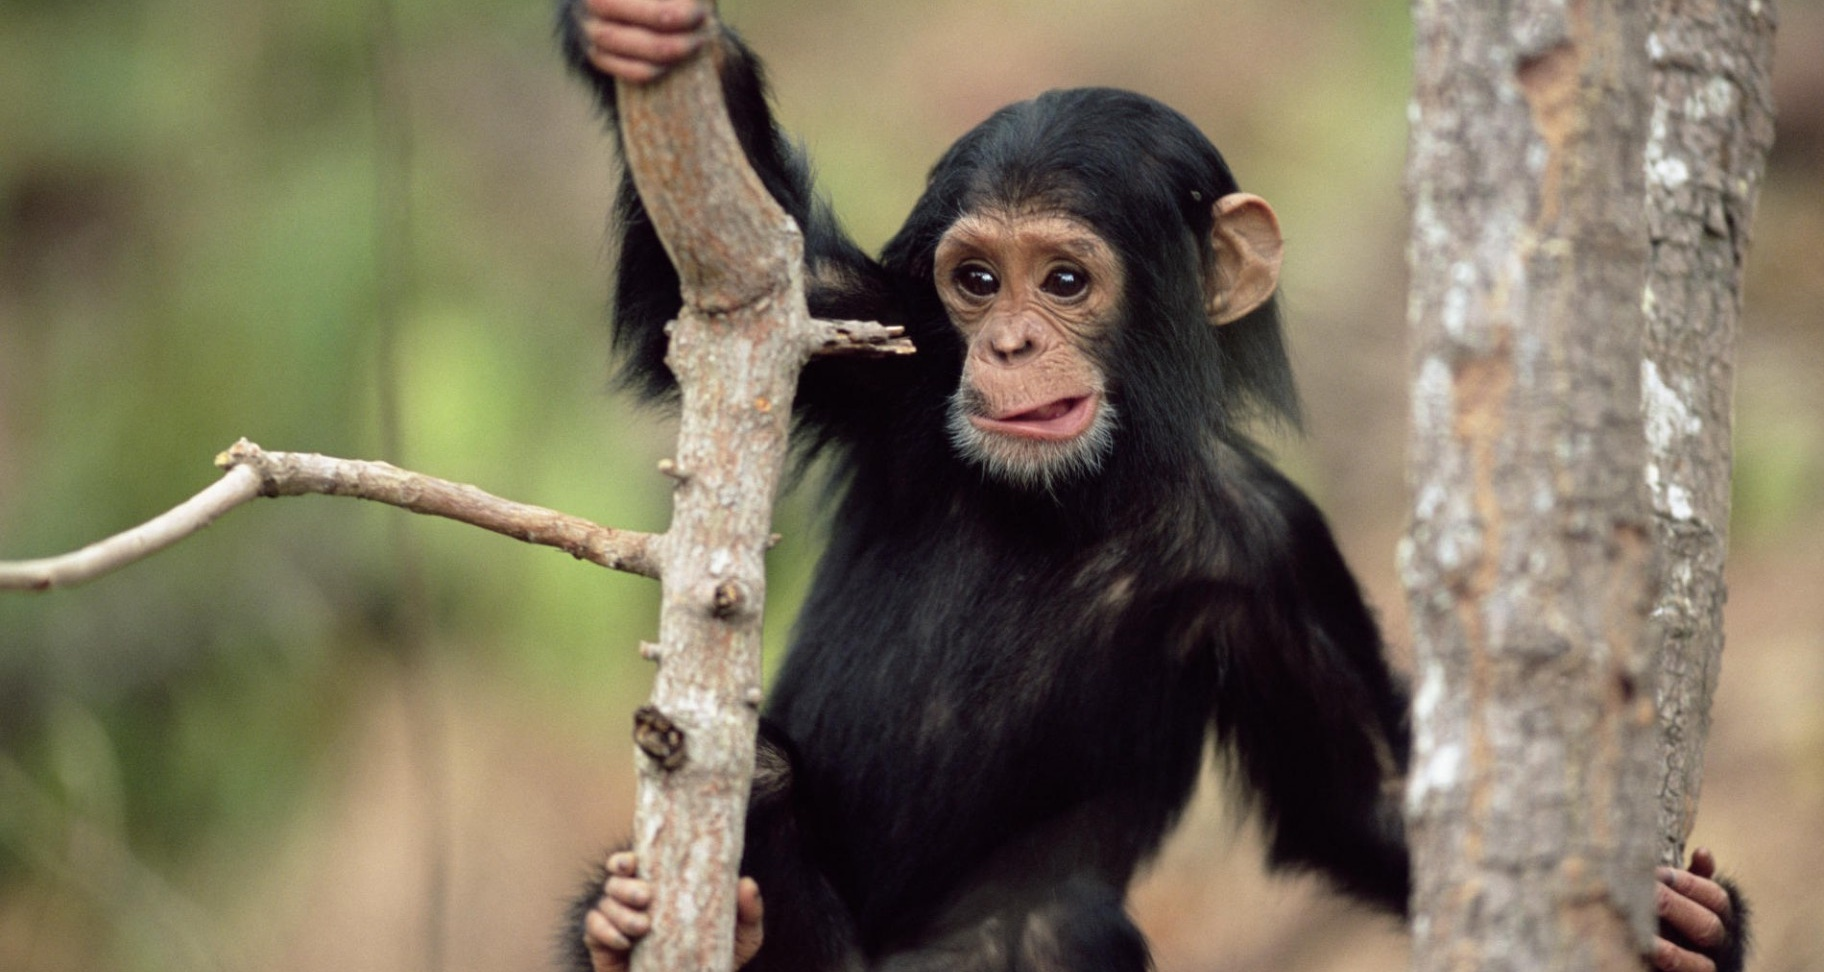 picture of chimpanzee monkey